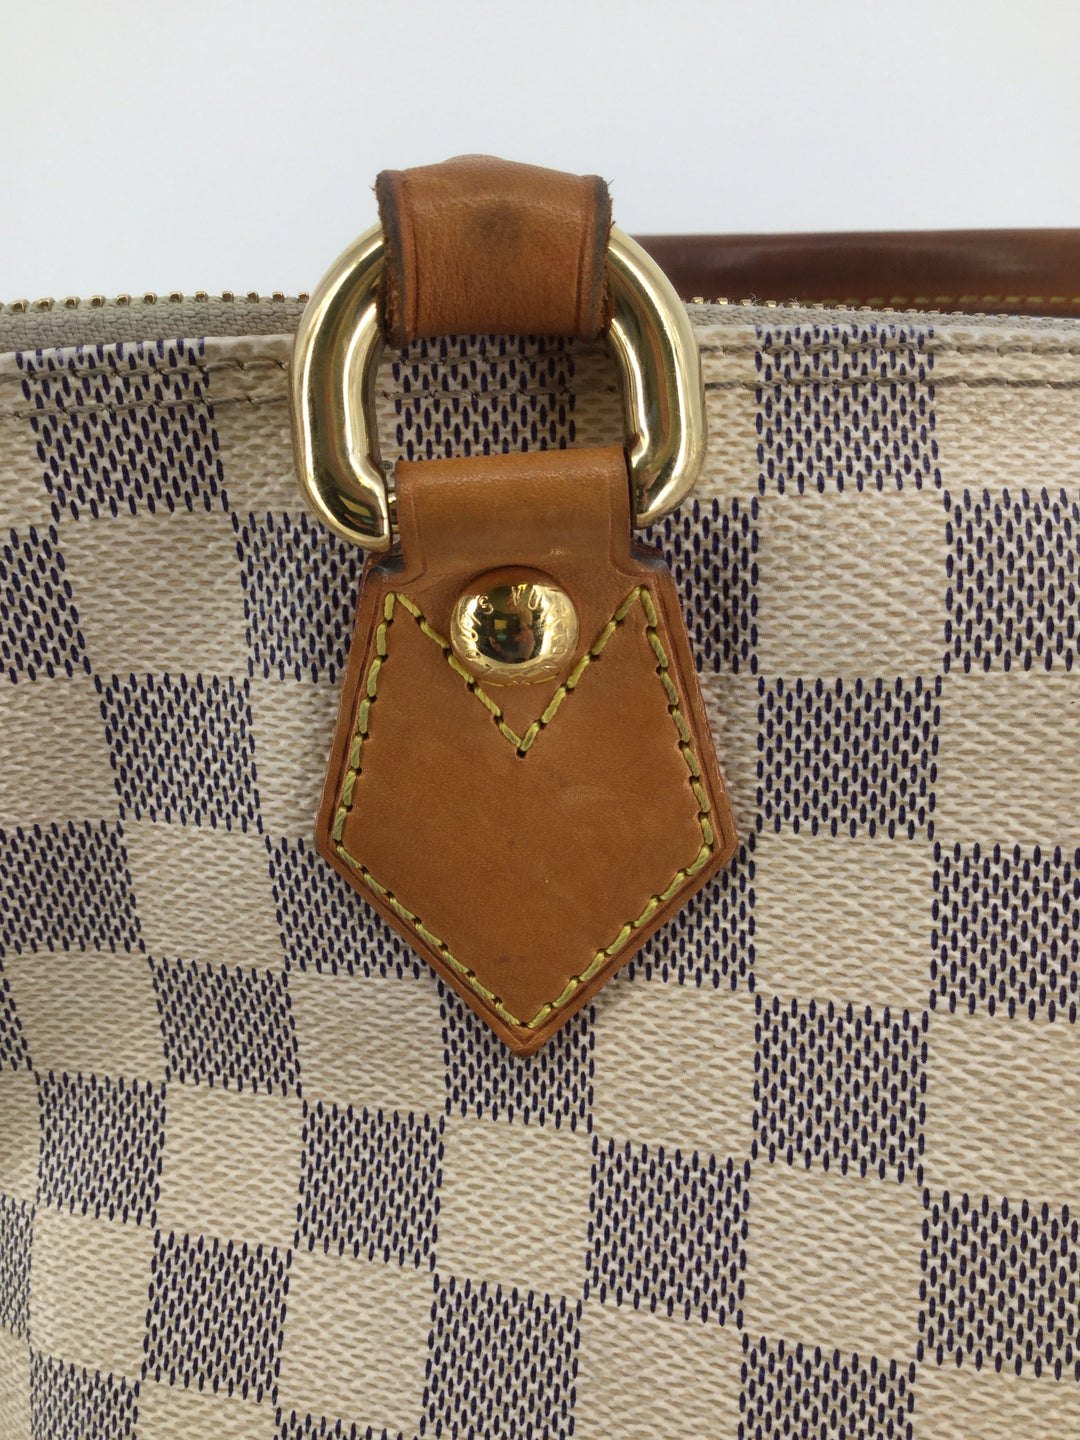 Louis Vuitton Cream Designer Handbag Size Medium - <P>TAKE A LOOK AT THIS GORGEOUS LOUIS VUITTON. CREAM/TAN IN COLOR, SIZE MEDIUM FOR ONLY $650. MINOR CONDITION (SEE PHOTOS).</P>